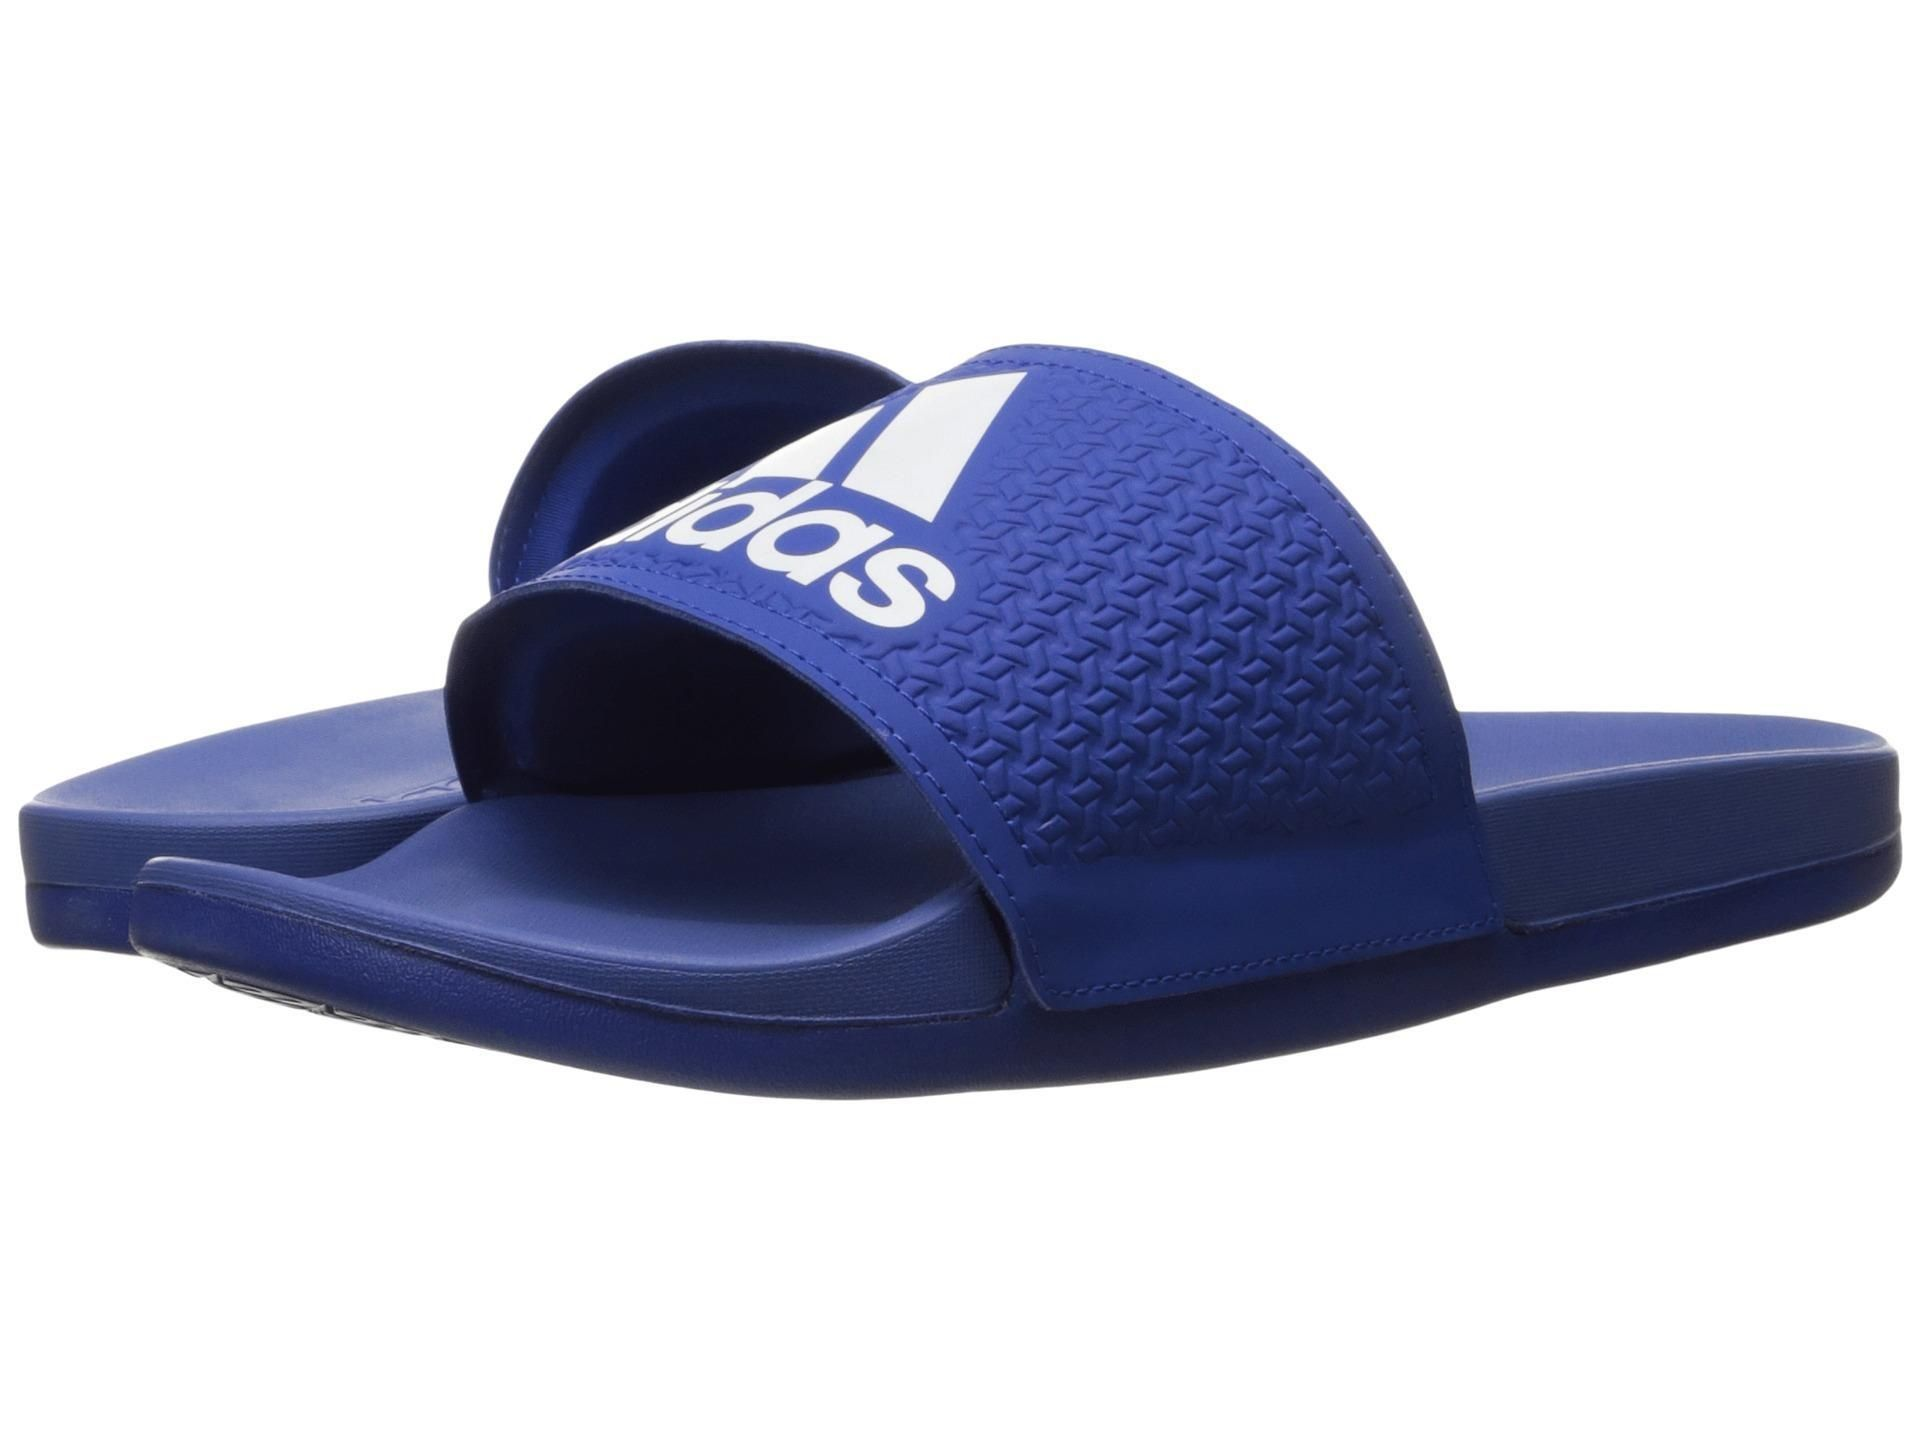 fe5b74a3bf07 adidas Adilette Supercloud Plus - Brought to you by Avarsha.com ...